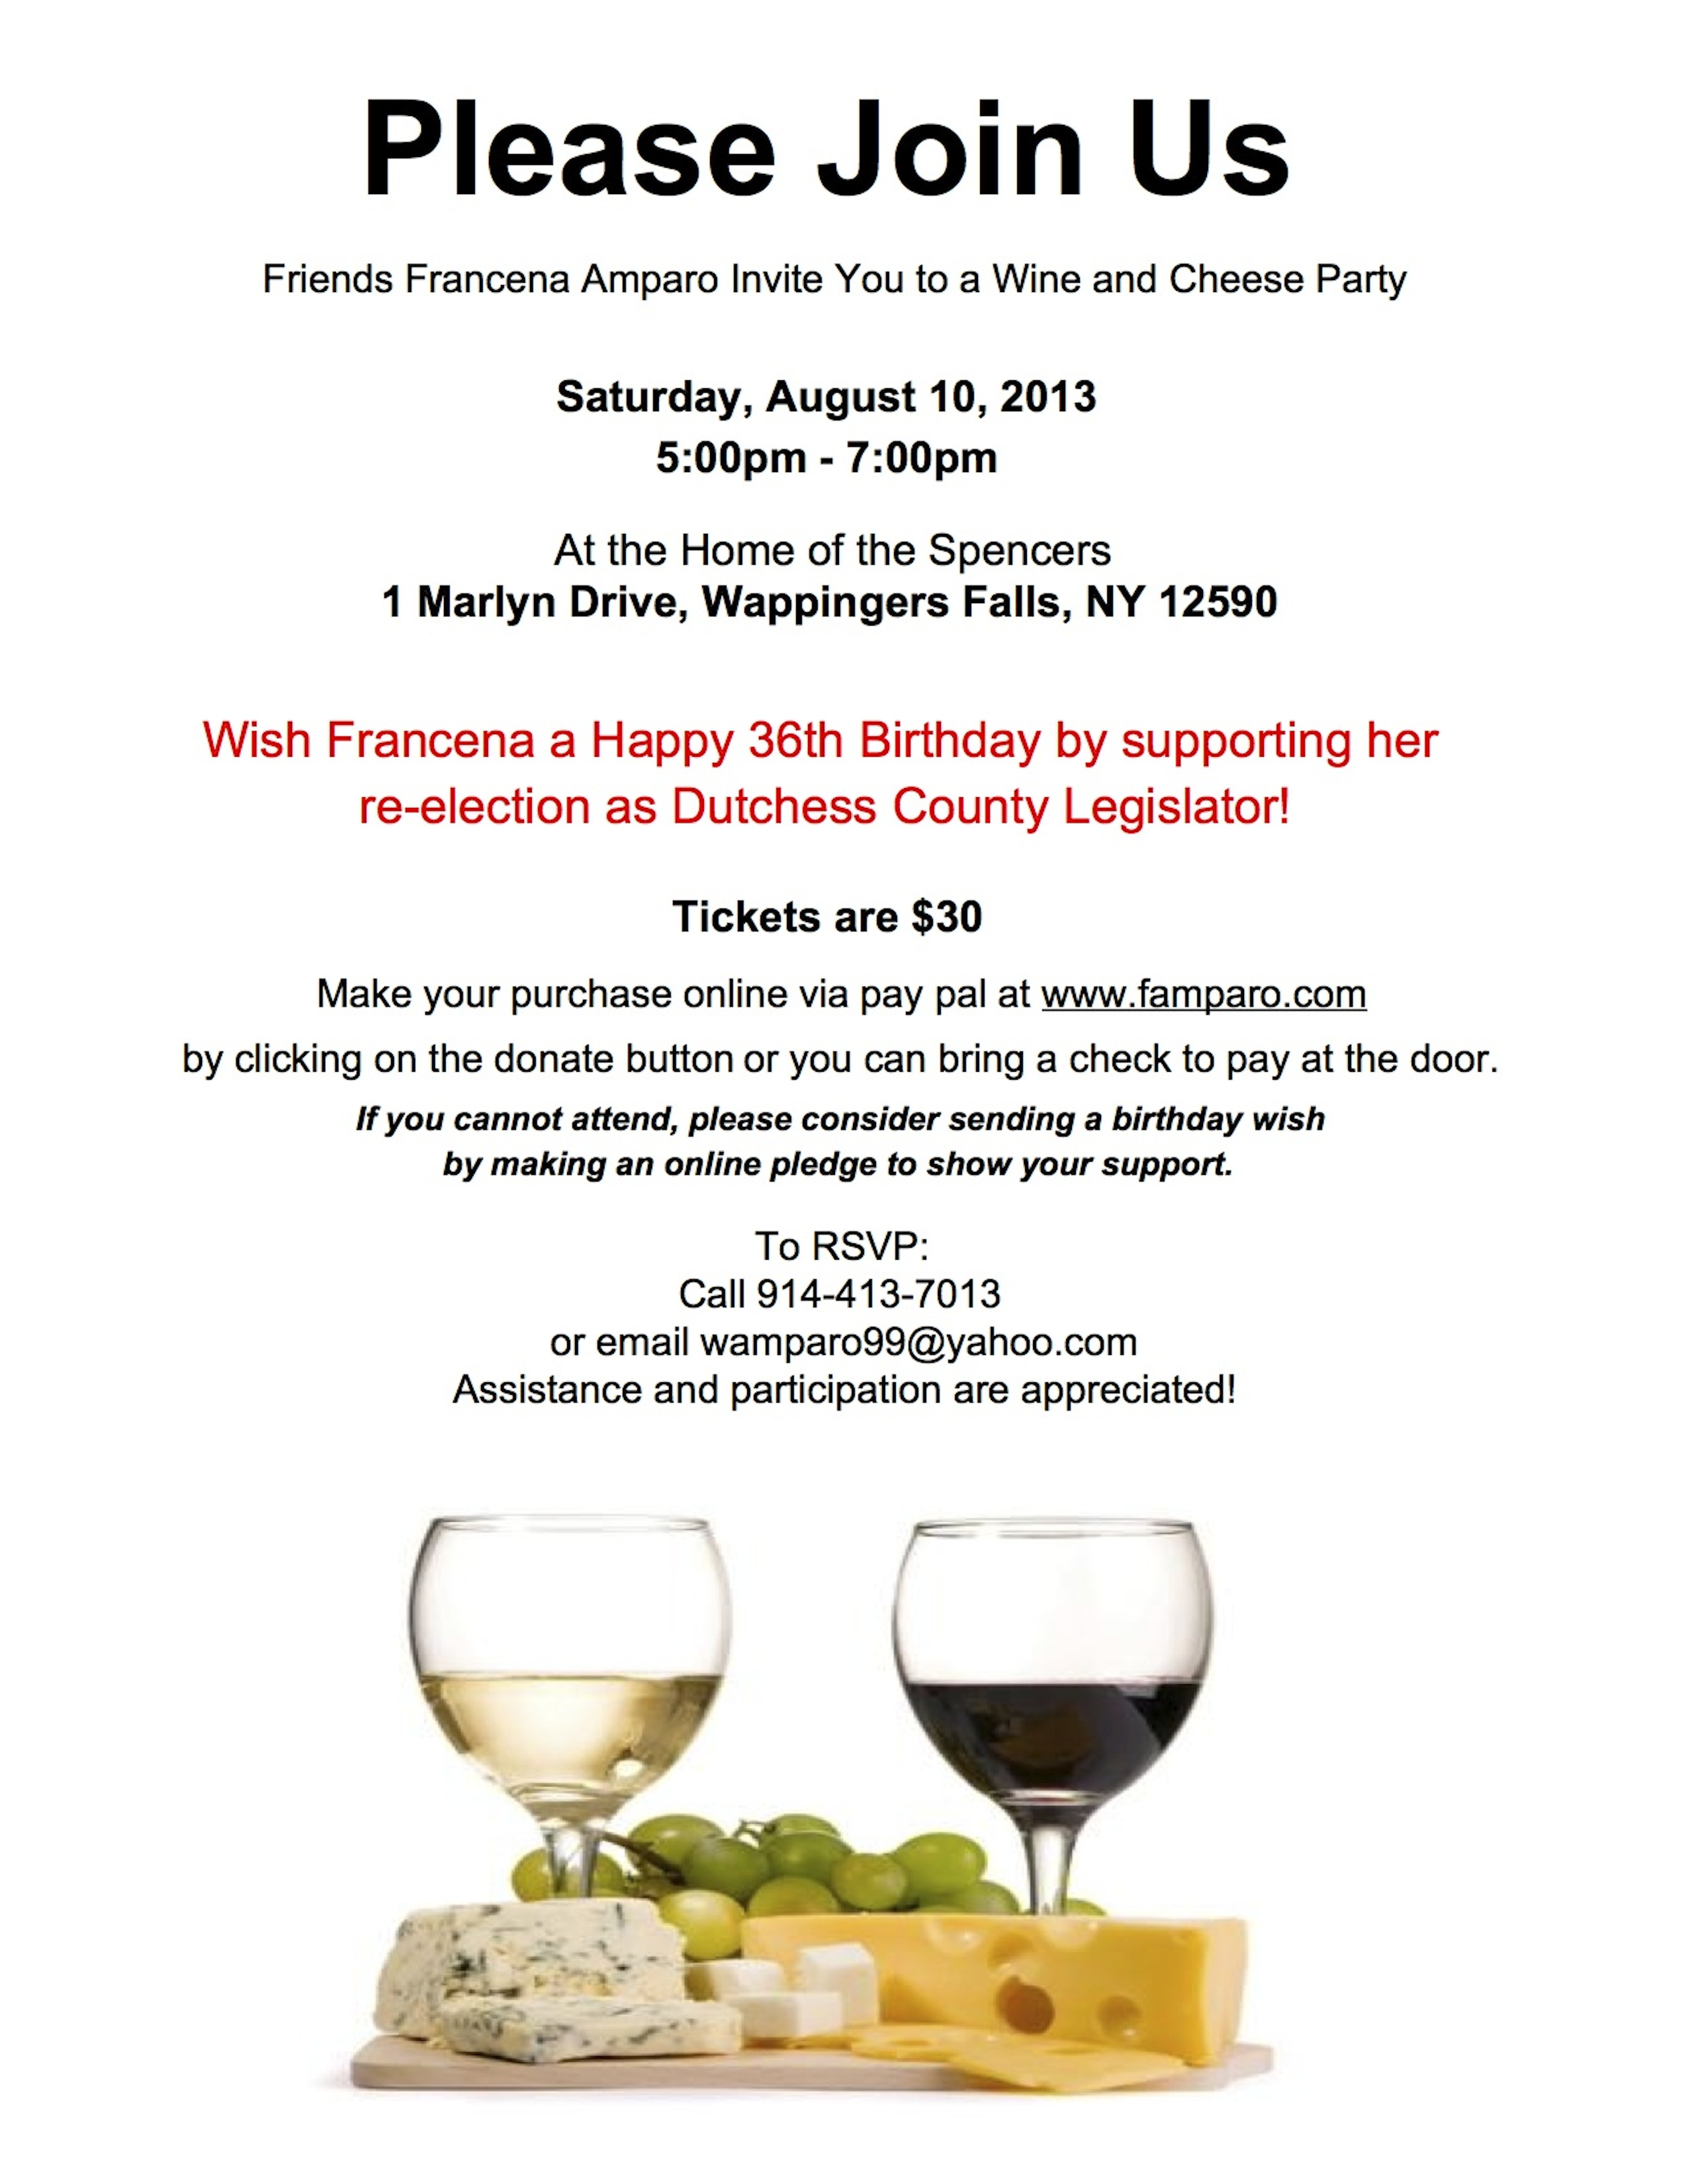 Wine and Cheese Party | Francena Amparo